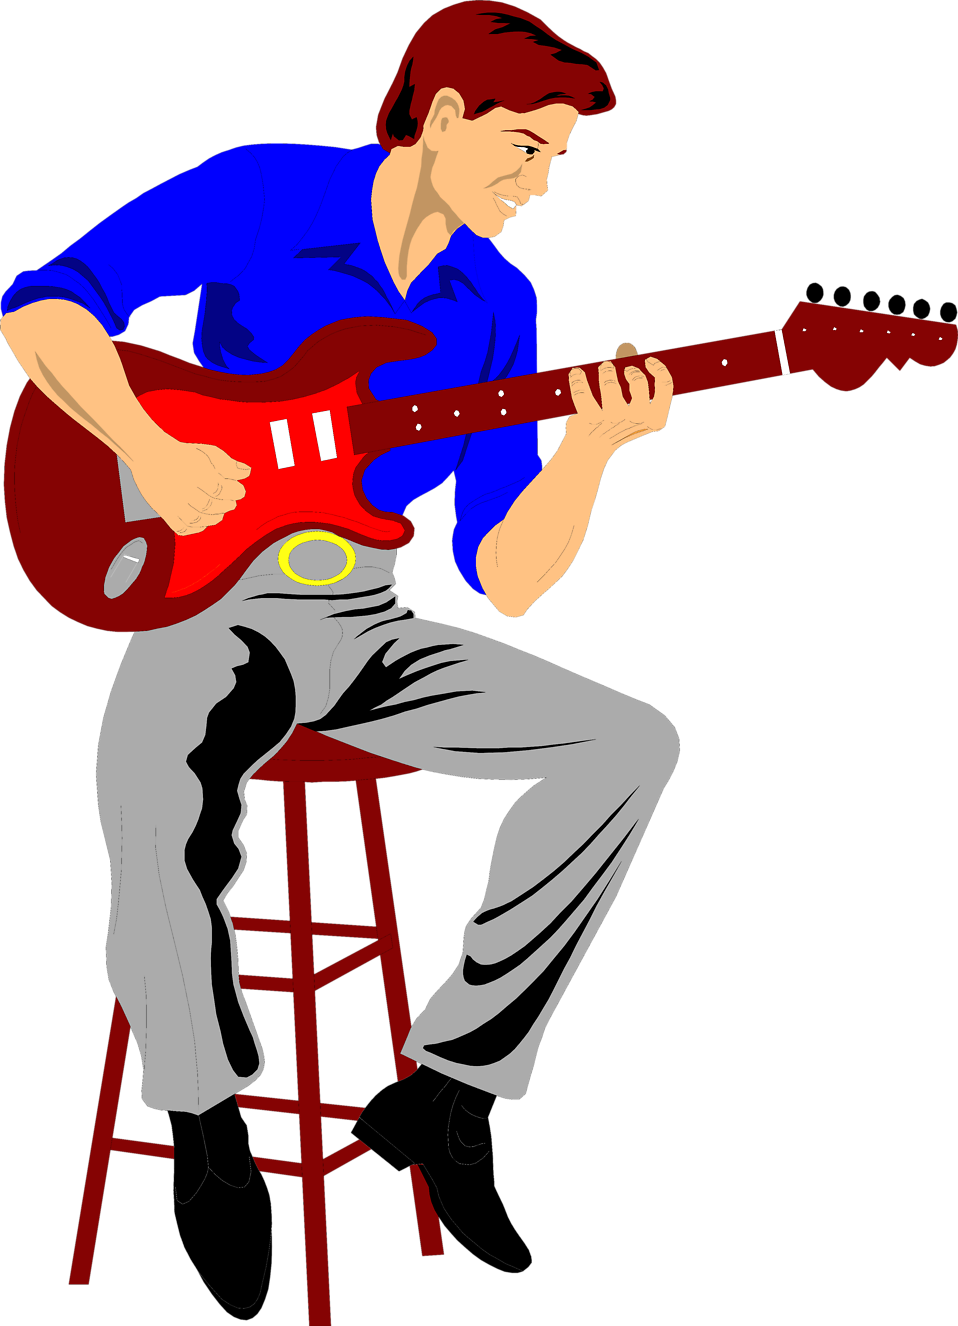 Free Playing Guitar Clipart Image.